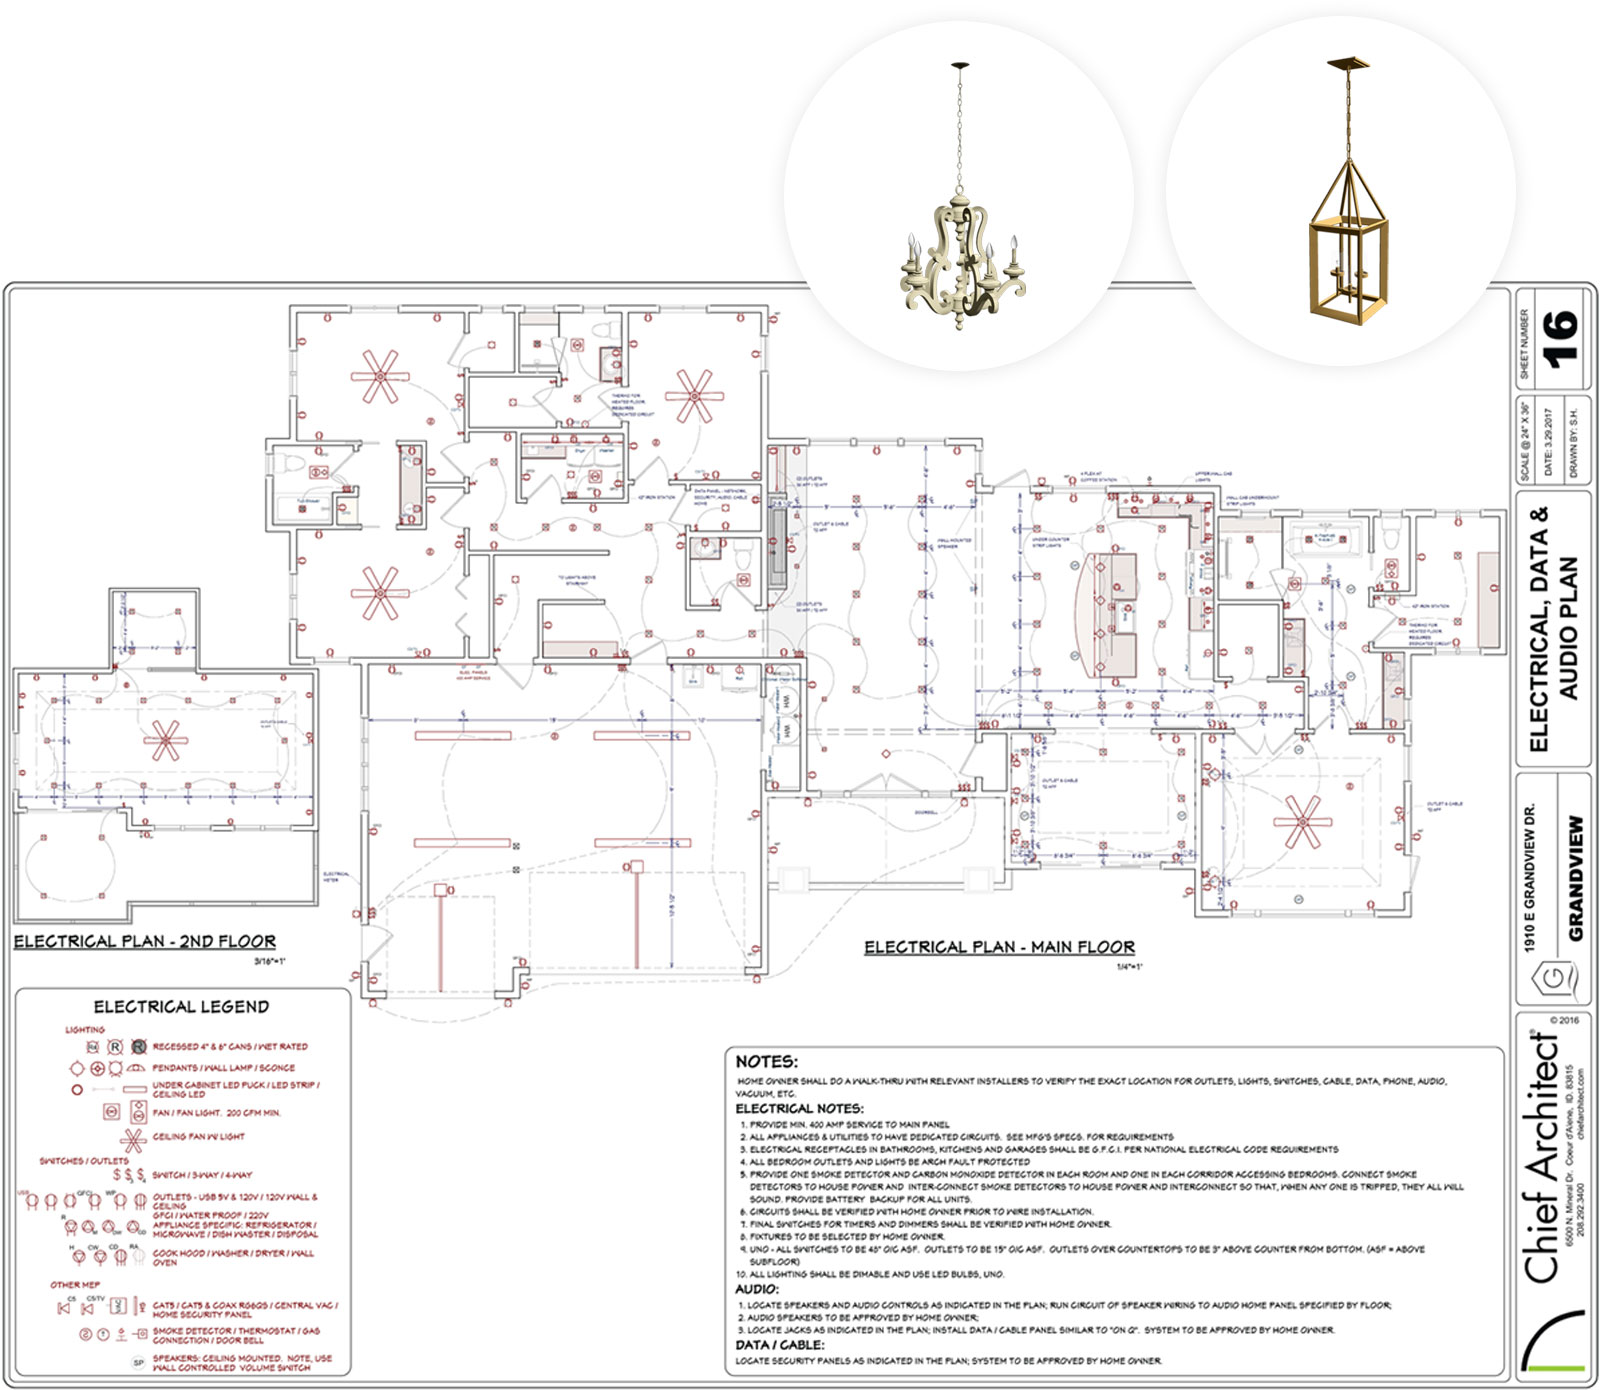 Interior design software chief architect - General notes for interior design drawings ...